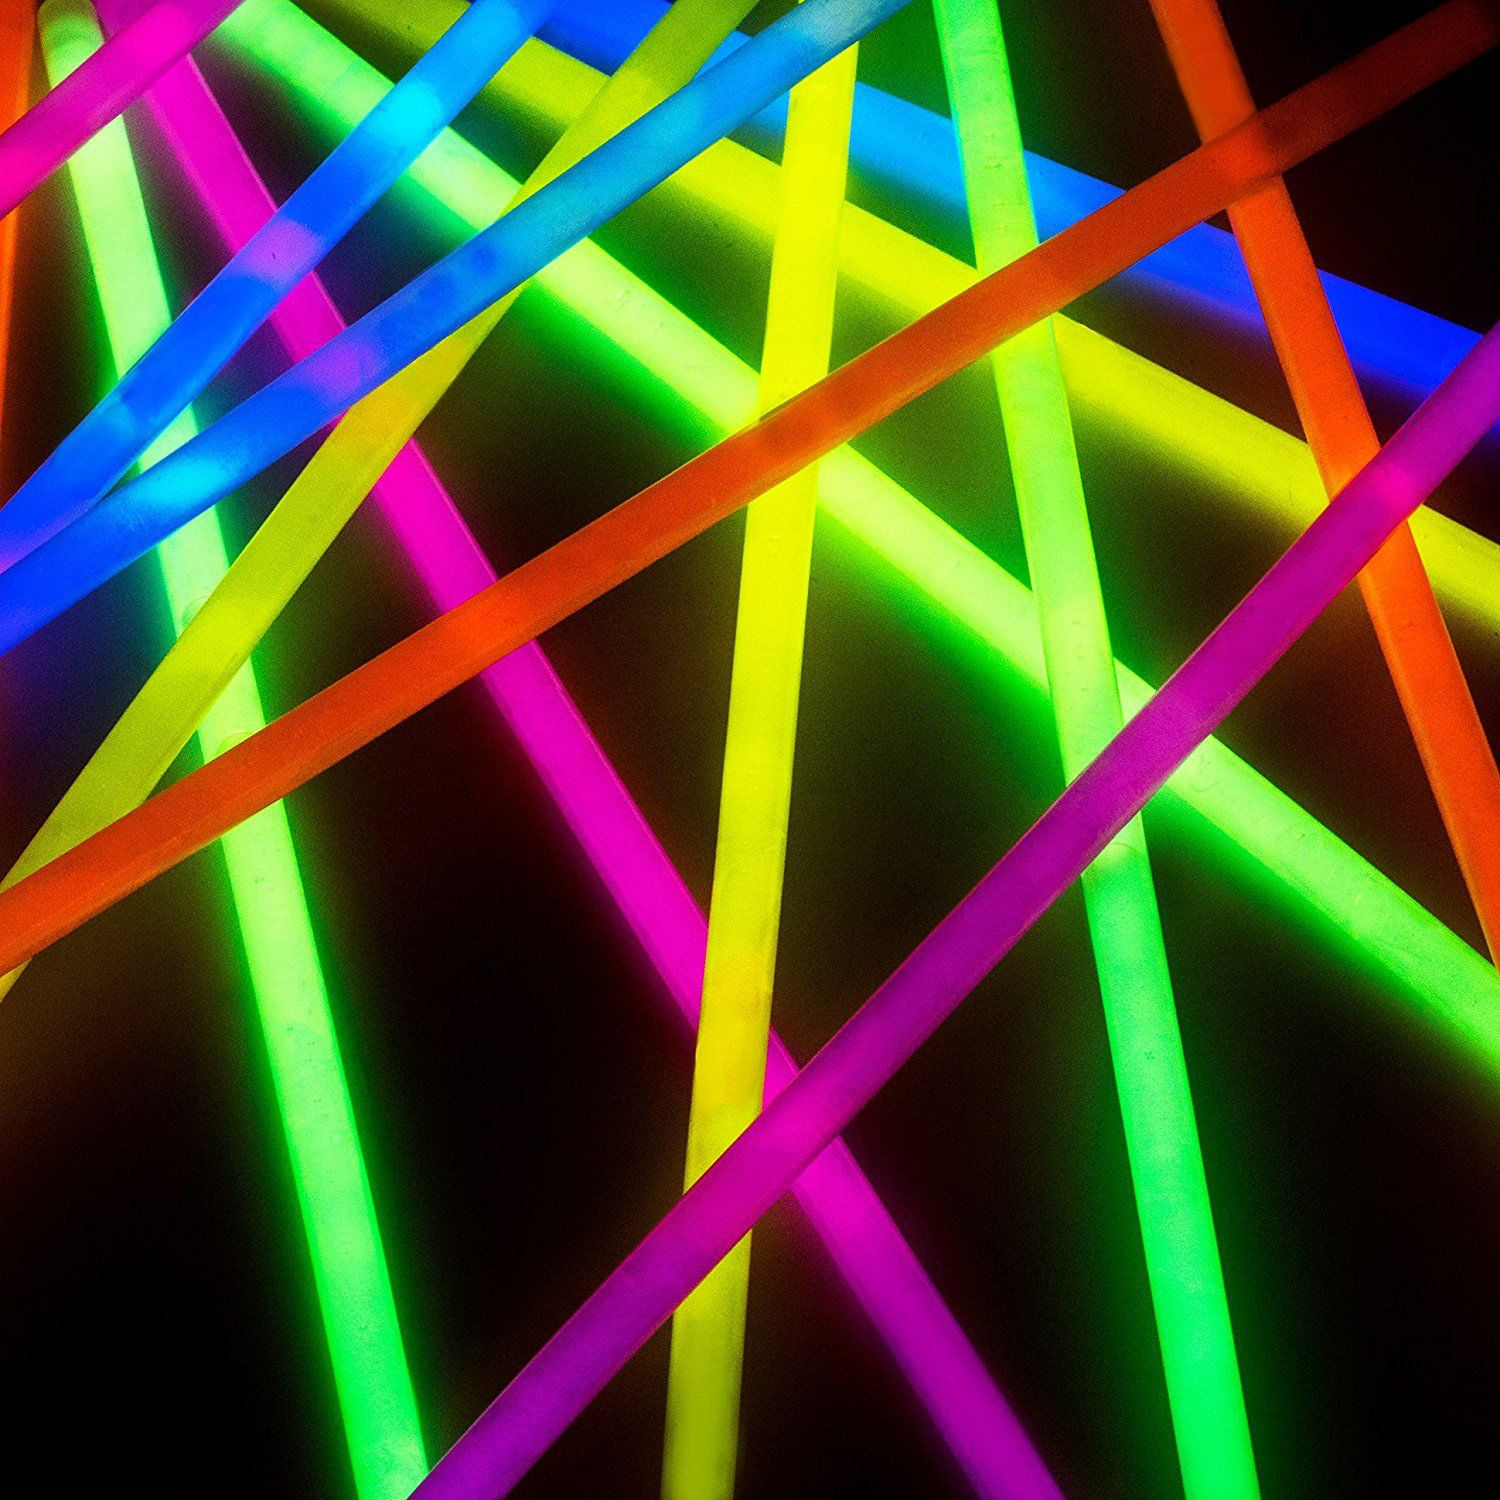 Awesome Glow Sticks Bulk Party Favors 300pk 8 In The Dark Supplies Light Decorations Necklaces And Bracelets For Kids